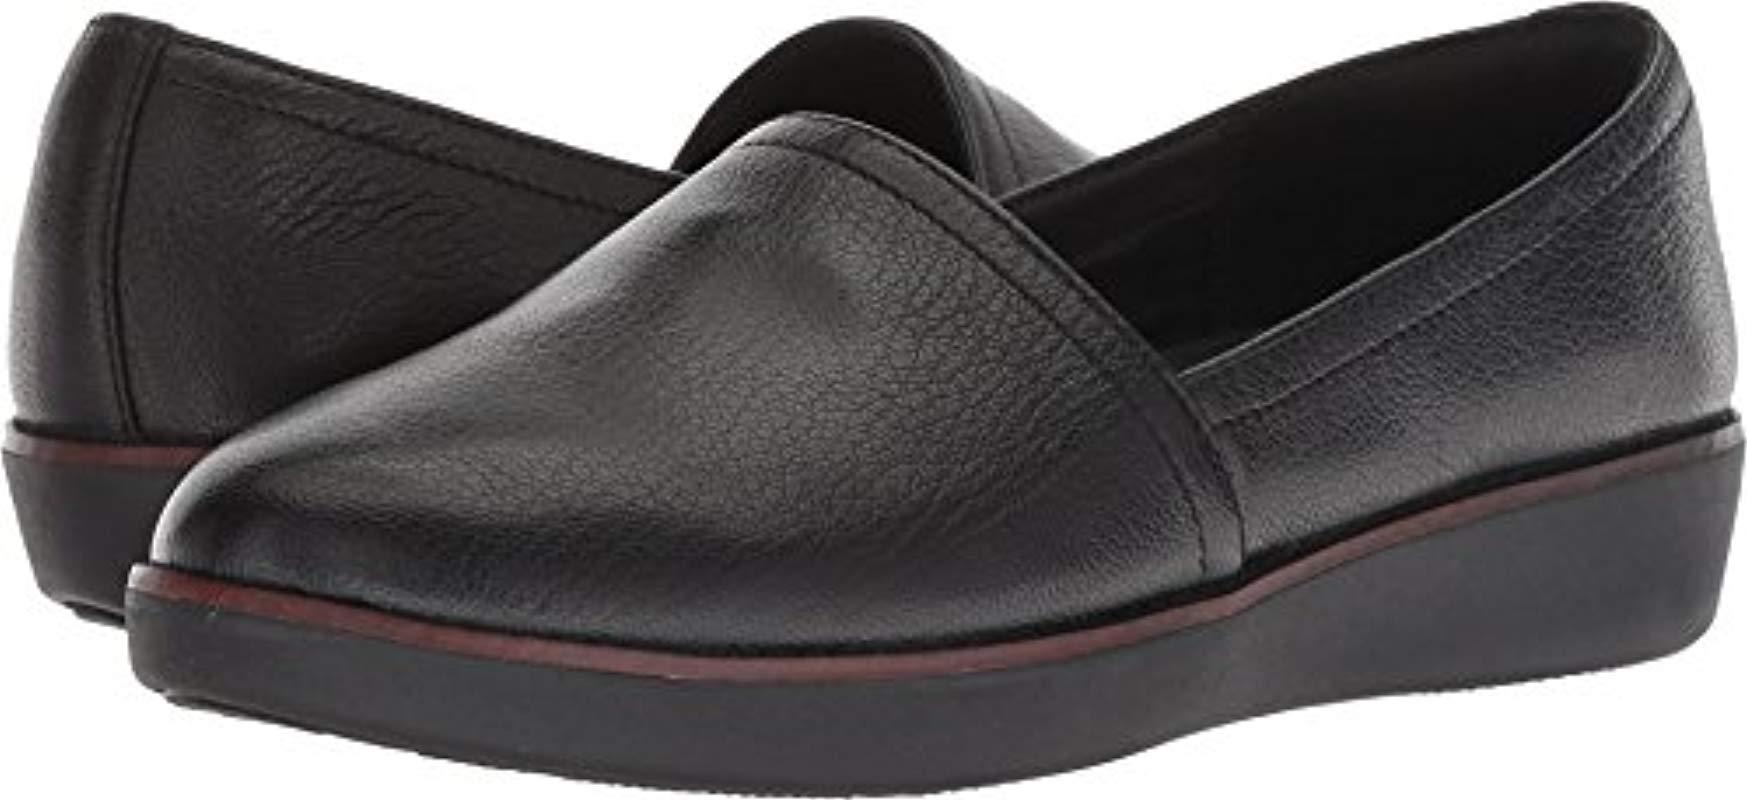 c2ac8ce97bee6e Lyst - Fitflop Casa Loafer in Black - Save 8.860759493670884%